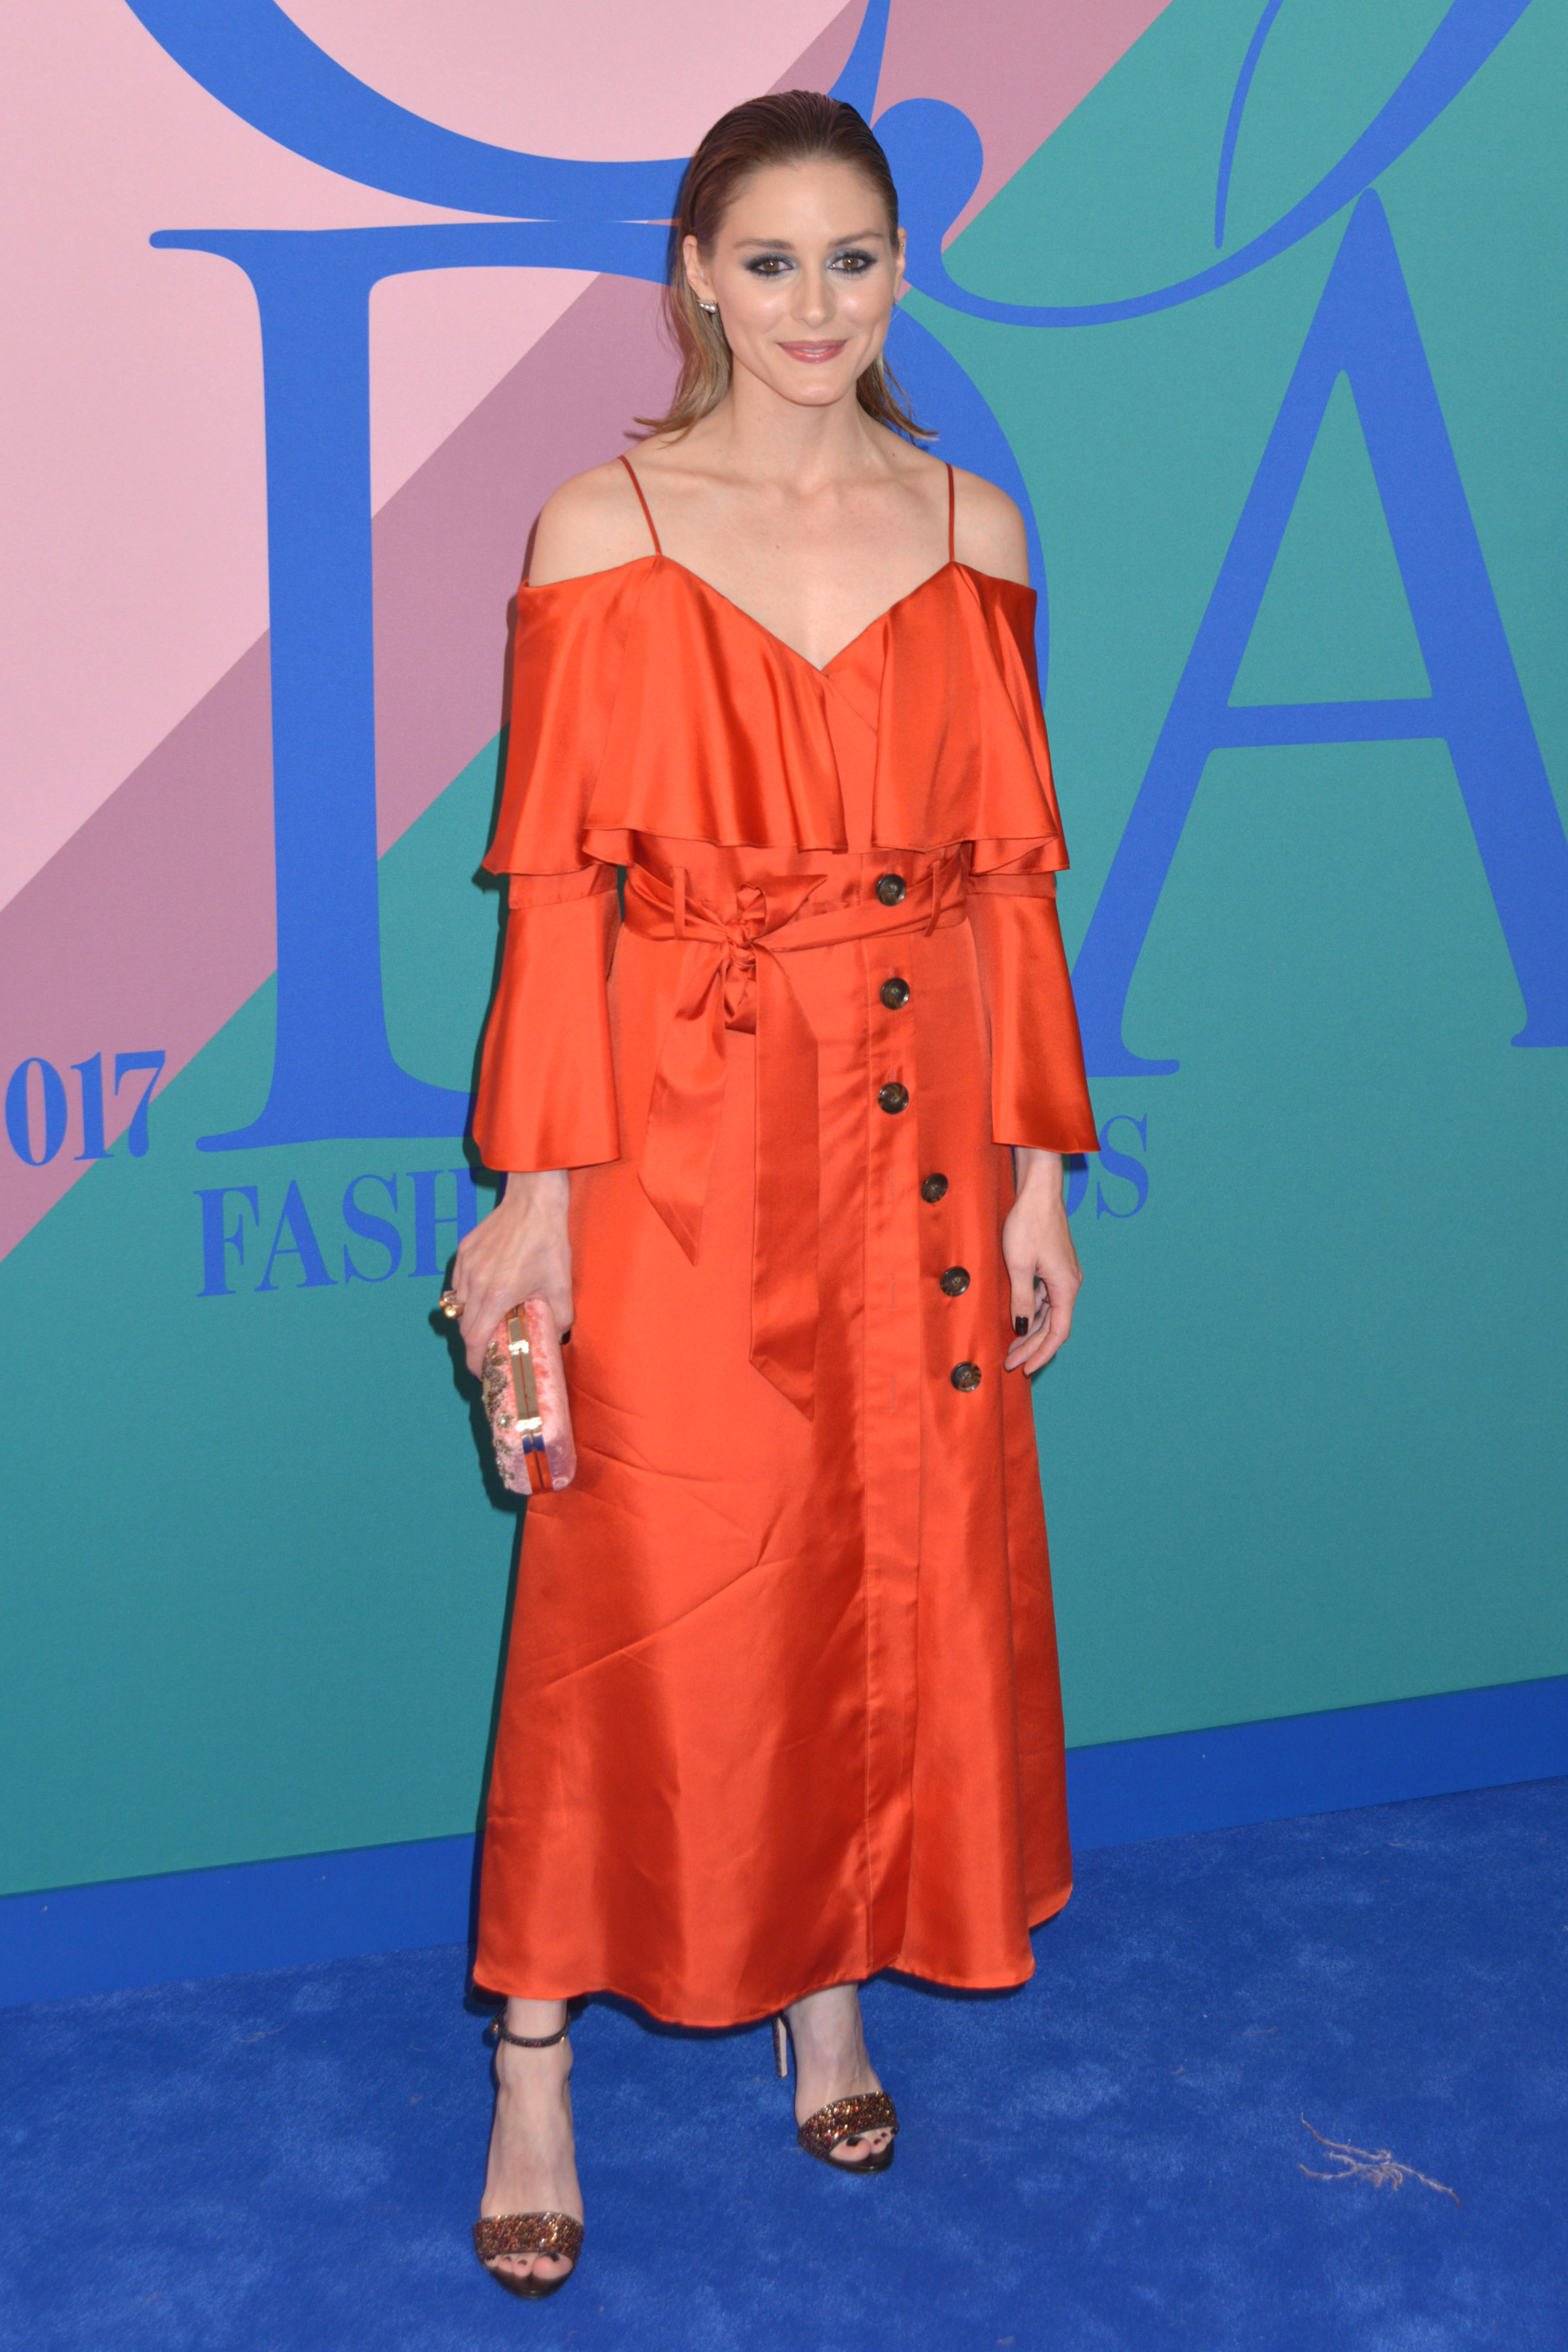 CFDA Awards 2017 ŕ New York le 5 Juin 2017 - Olivia Palermo at 2017 CFDA Awards at the Hammerstein Ballroom in New York, New York, USA, 05 June 2017, Image: 335237284, License: Rights-managed, Restrictions: , Model Release: no, Credit line: Profimedia, KCS Presse